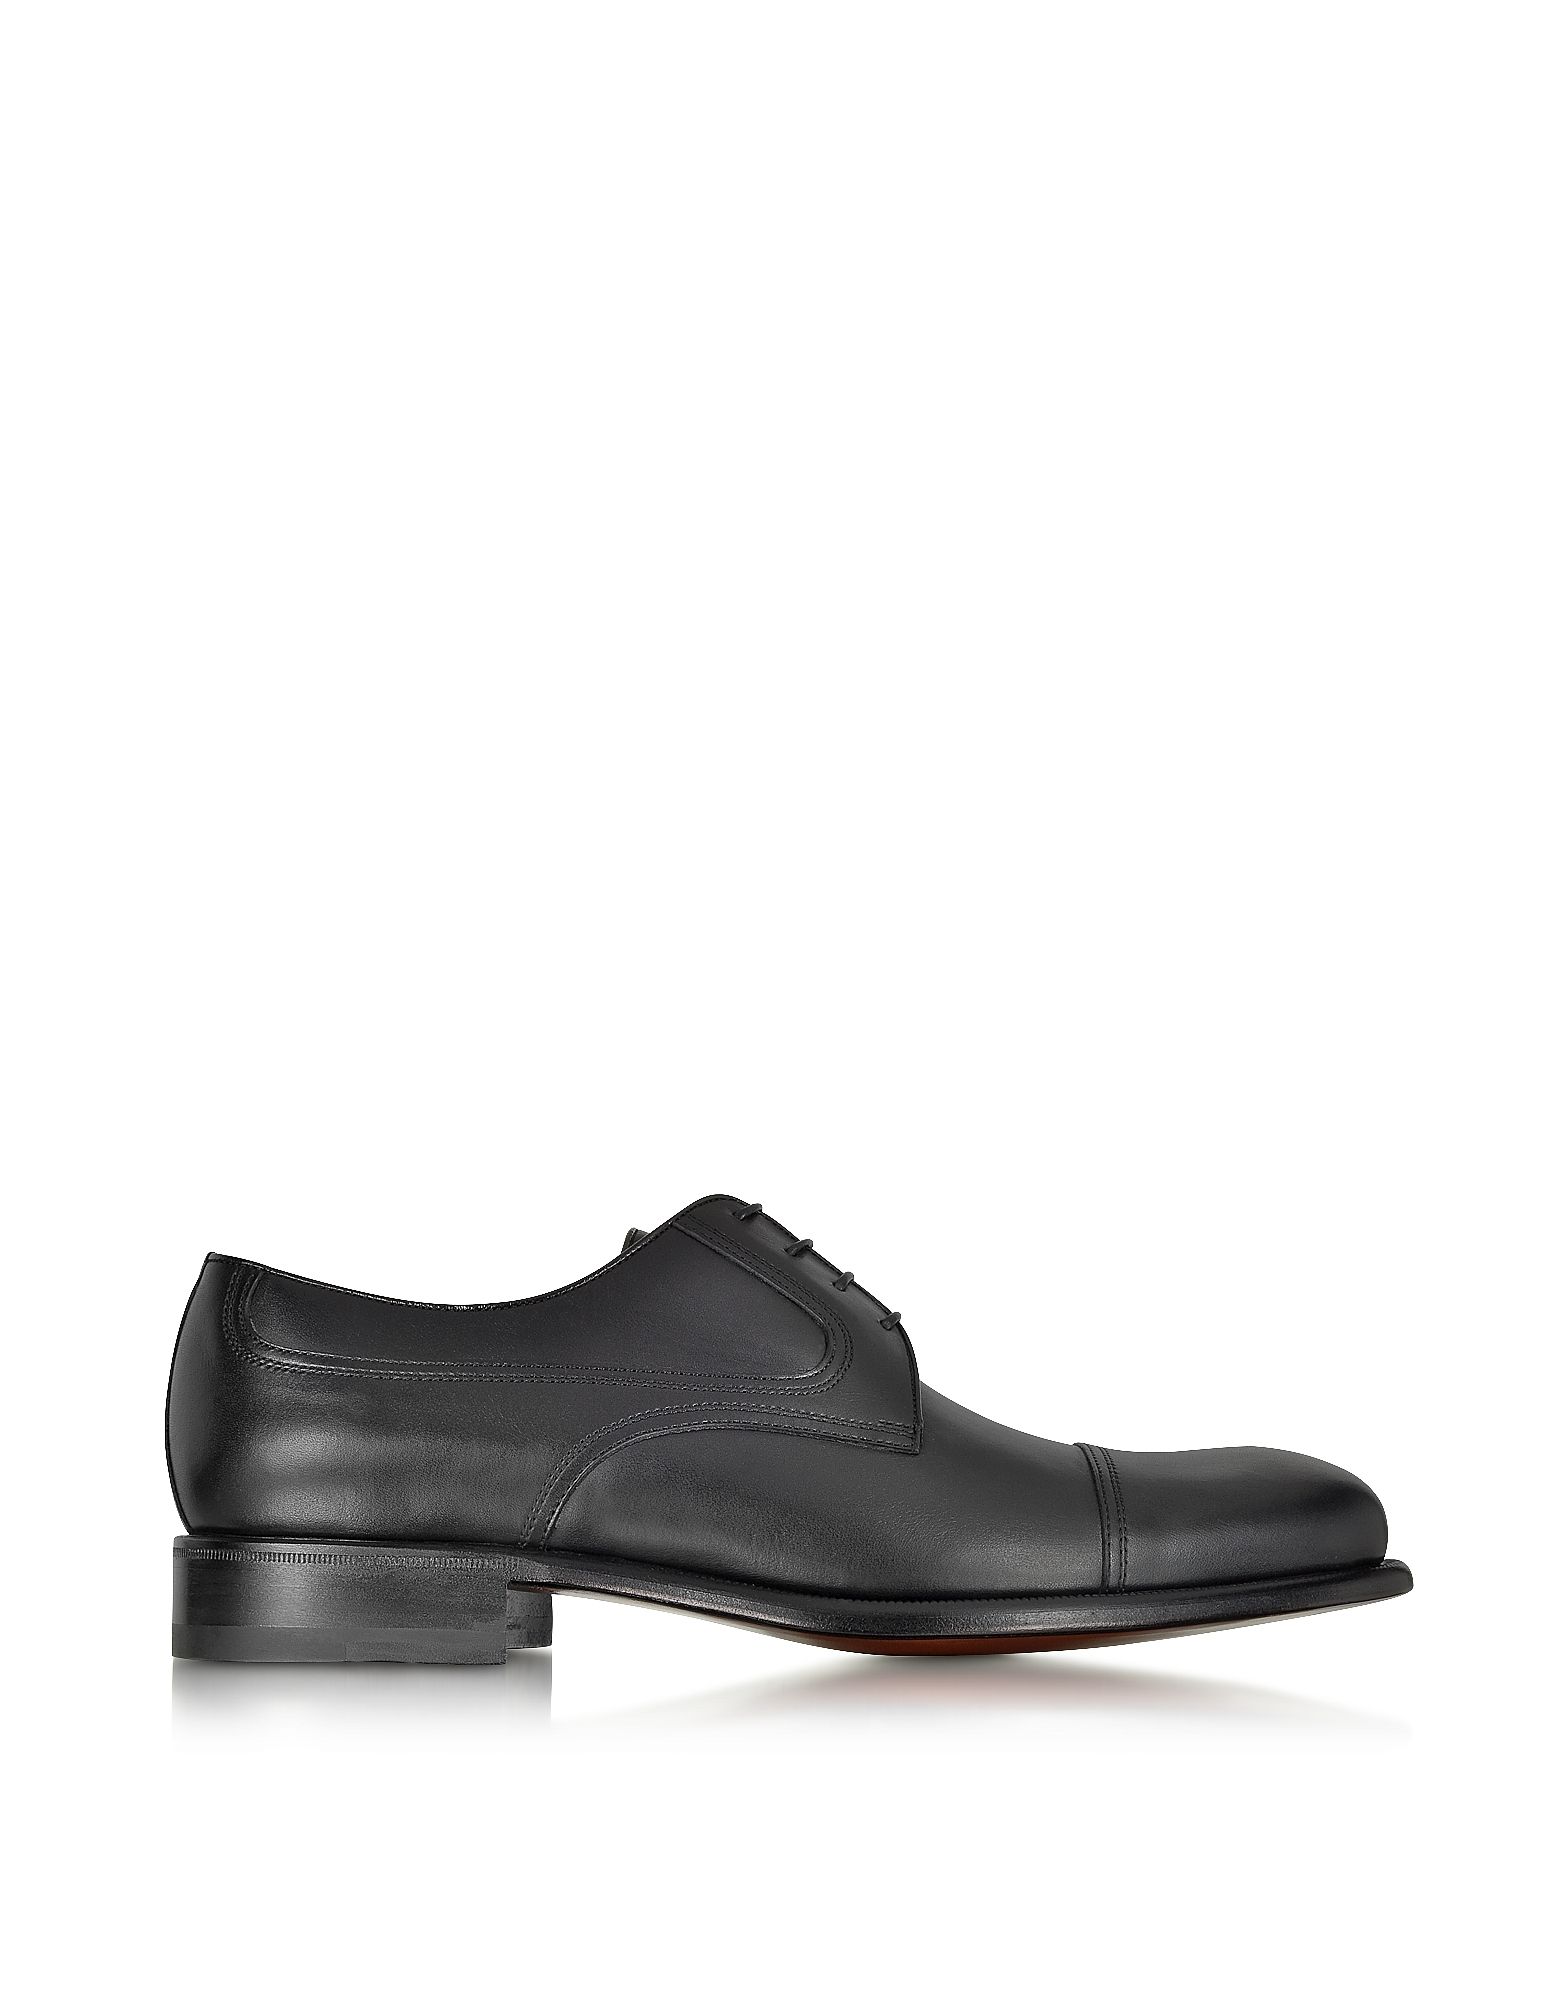 ForzieriDesigner Shoes, Italian Handcrafted and Washed Leather Derby Shoe